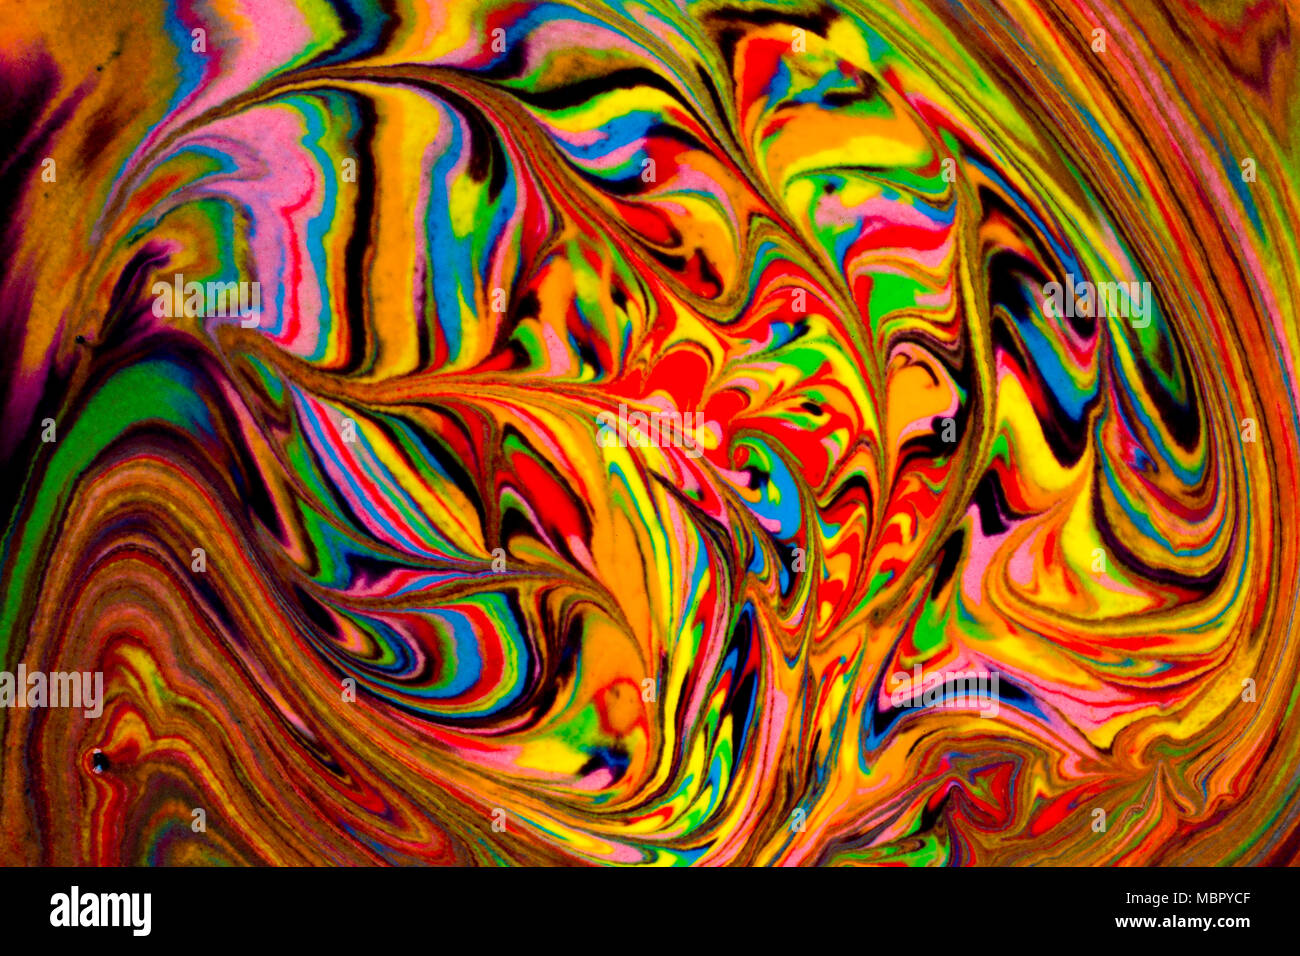 Colorful abstract acrylic painting. Natural dynamic mixture of oil colored pigments fluid flow background. Naturally blurred. Stock Photo